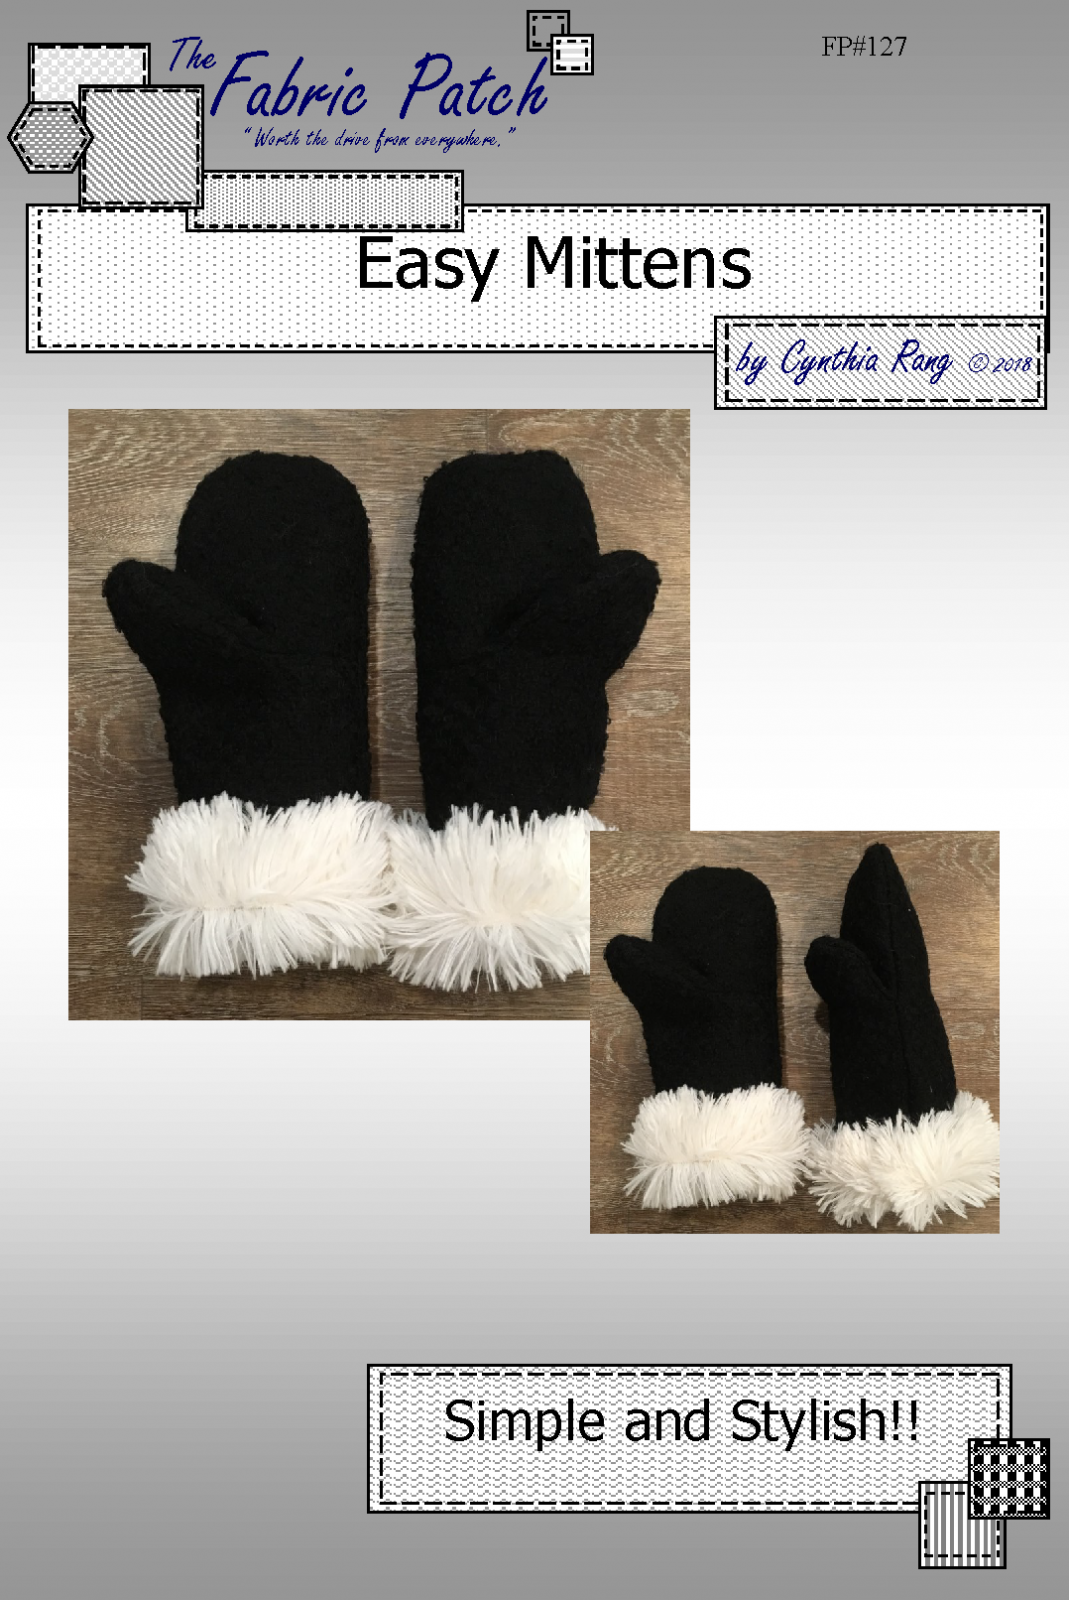 Easy Mittens Downloadable Pattern